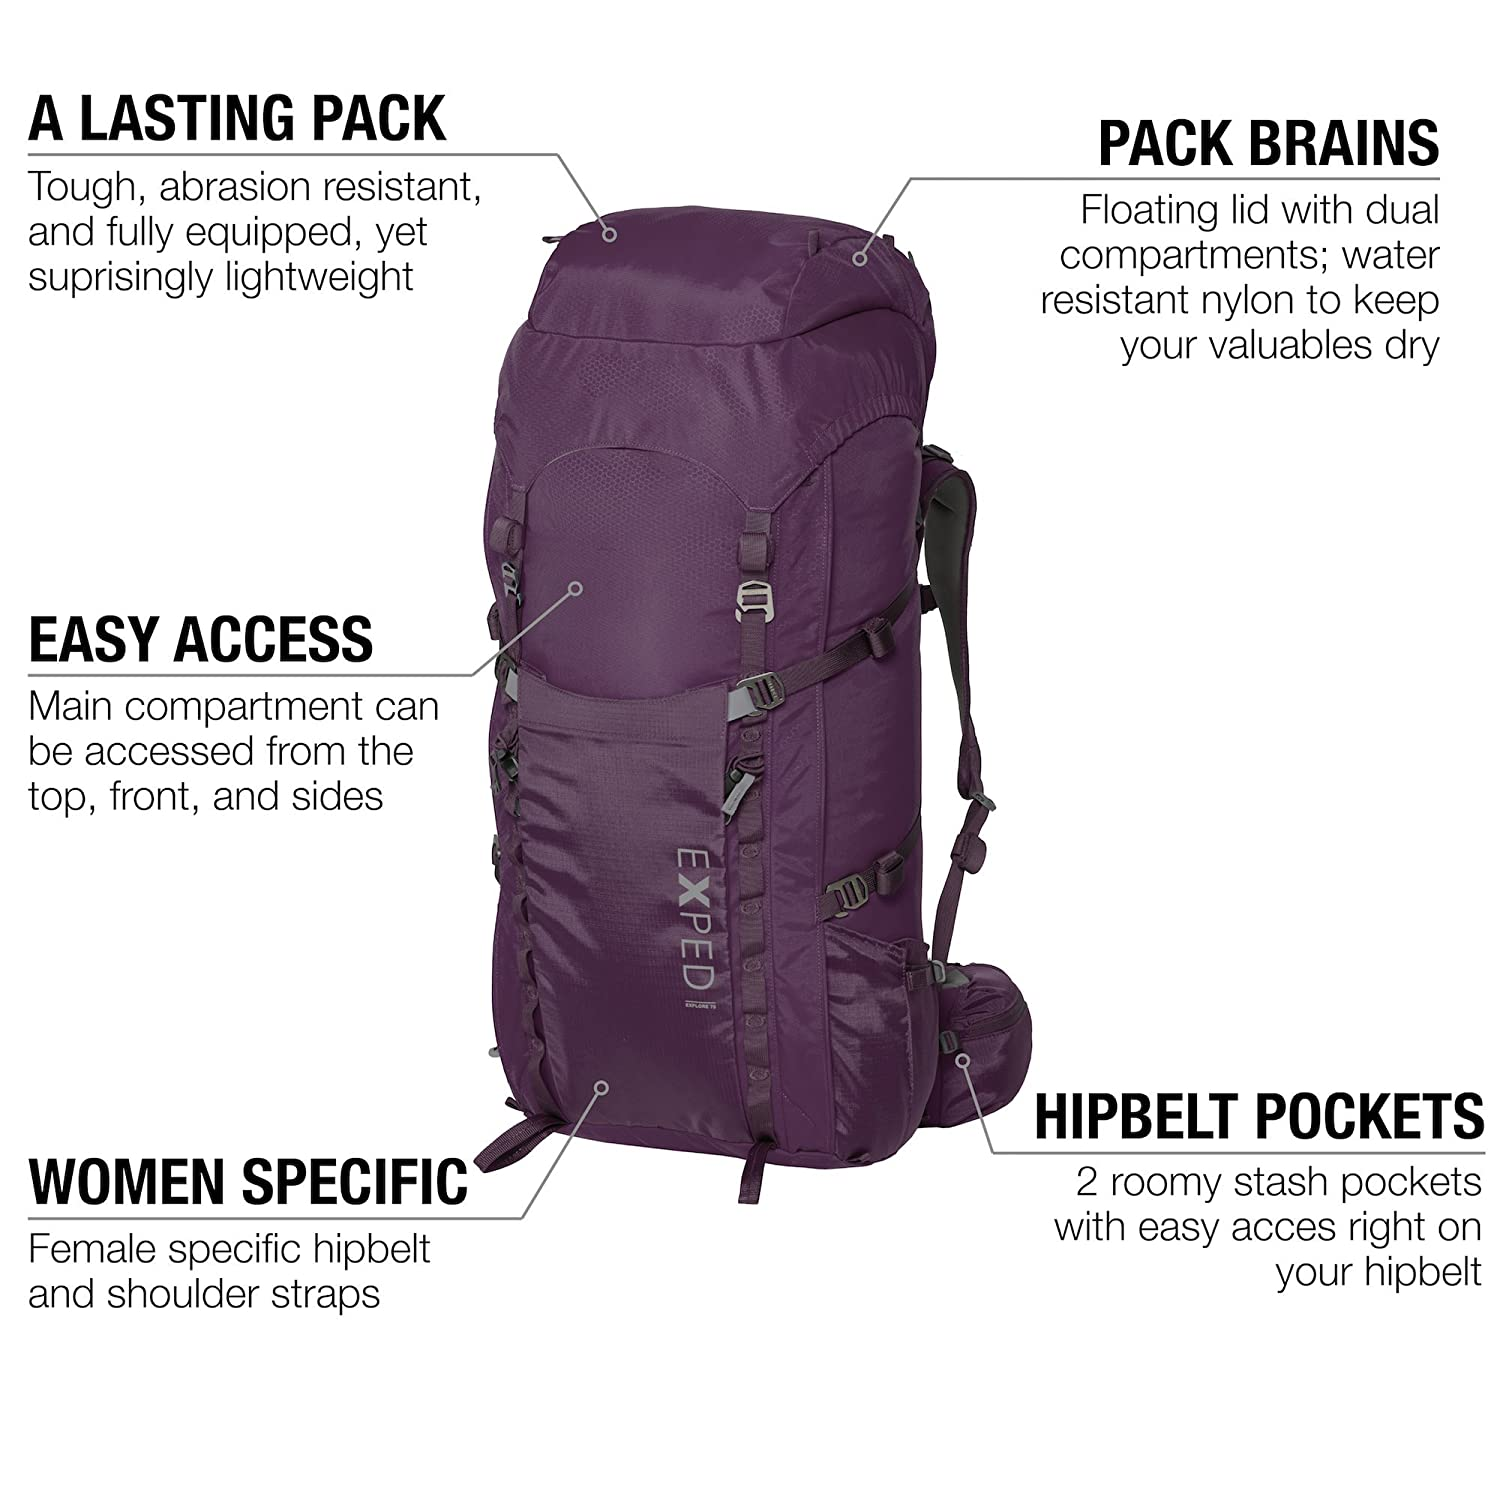 694deaa789bc Amazon.com: Exped Women's Explore 60 Backpack: Sports & Outdoors